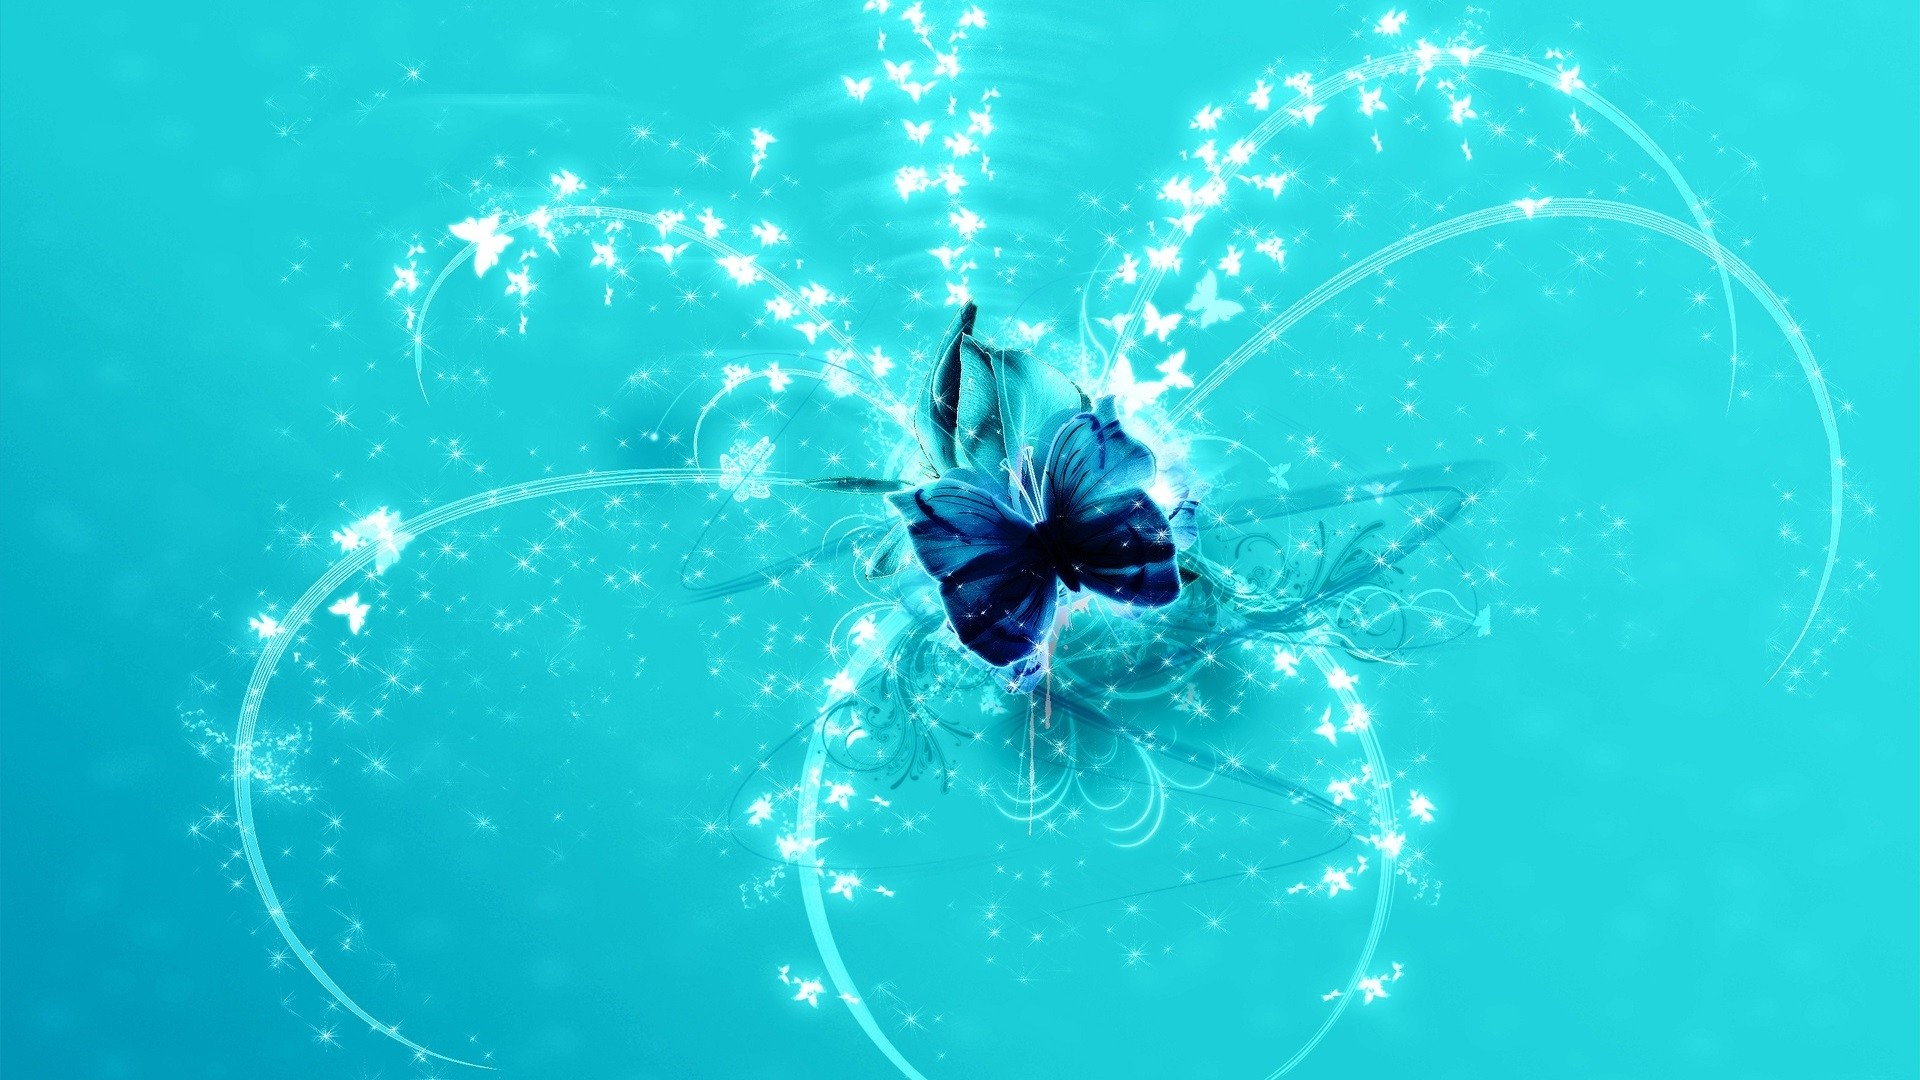 Blue Butterfly Download Free Wallpaper Image Search